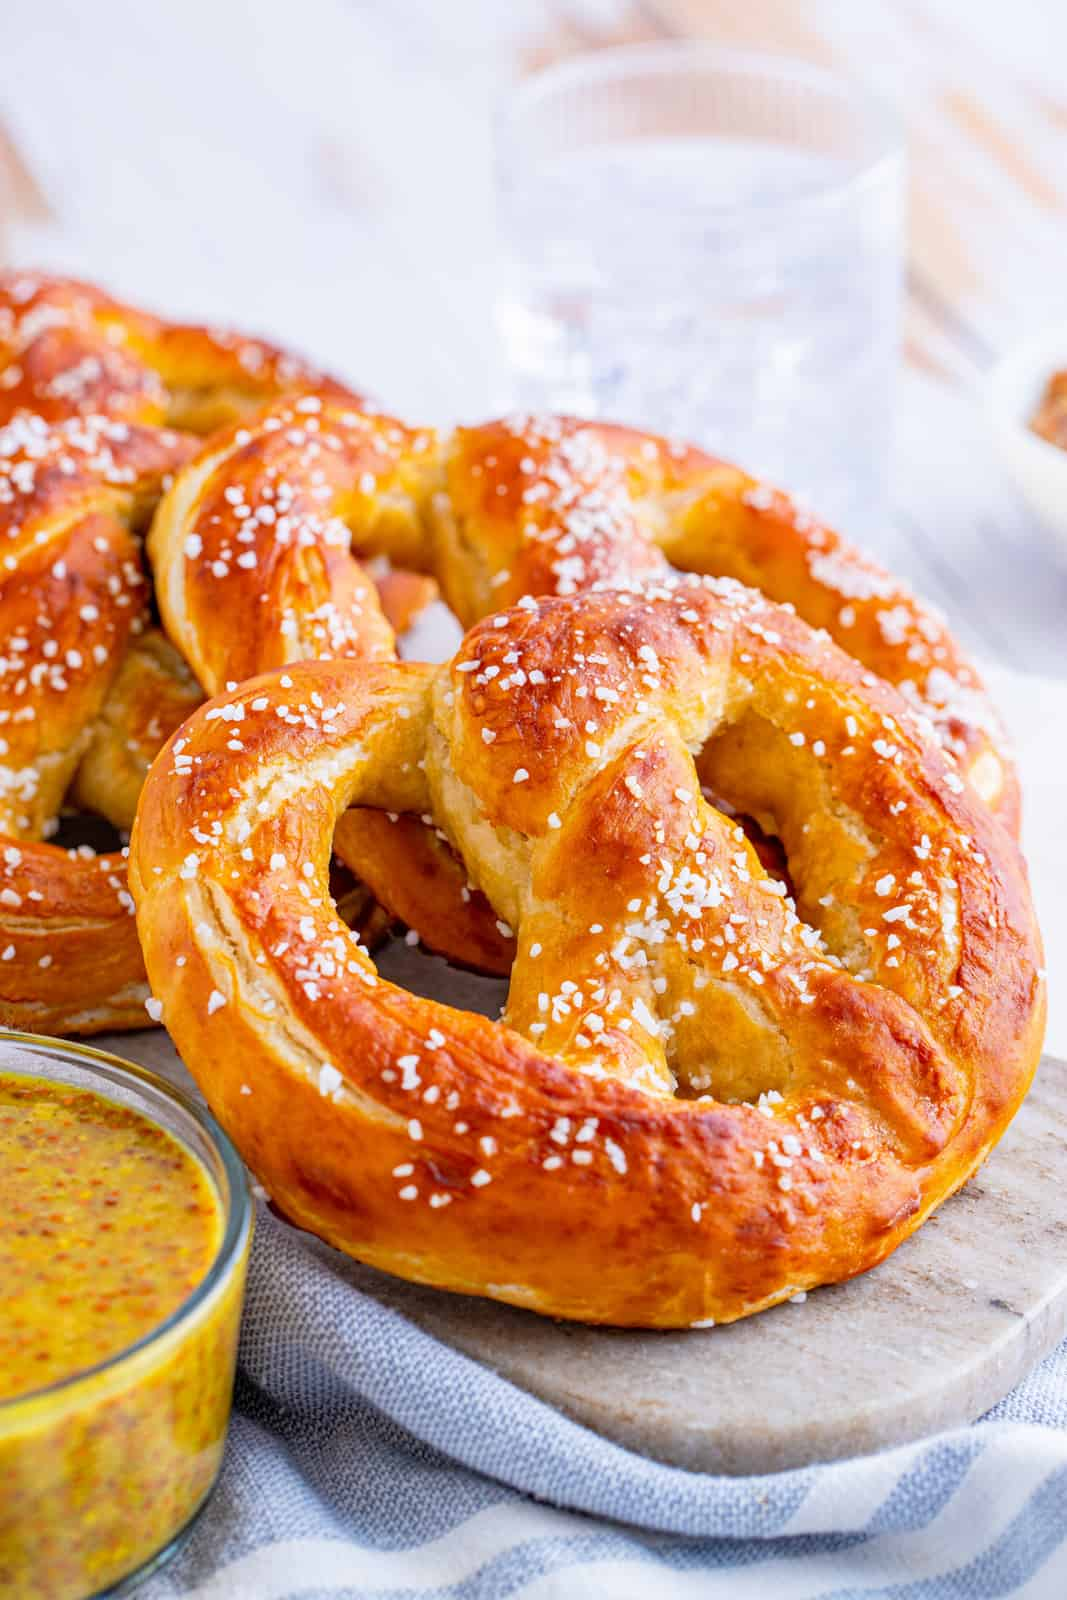 Soft Pretzels laying atop one another on marble board with mustard next to is